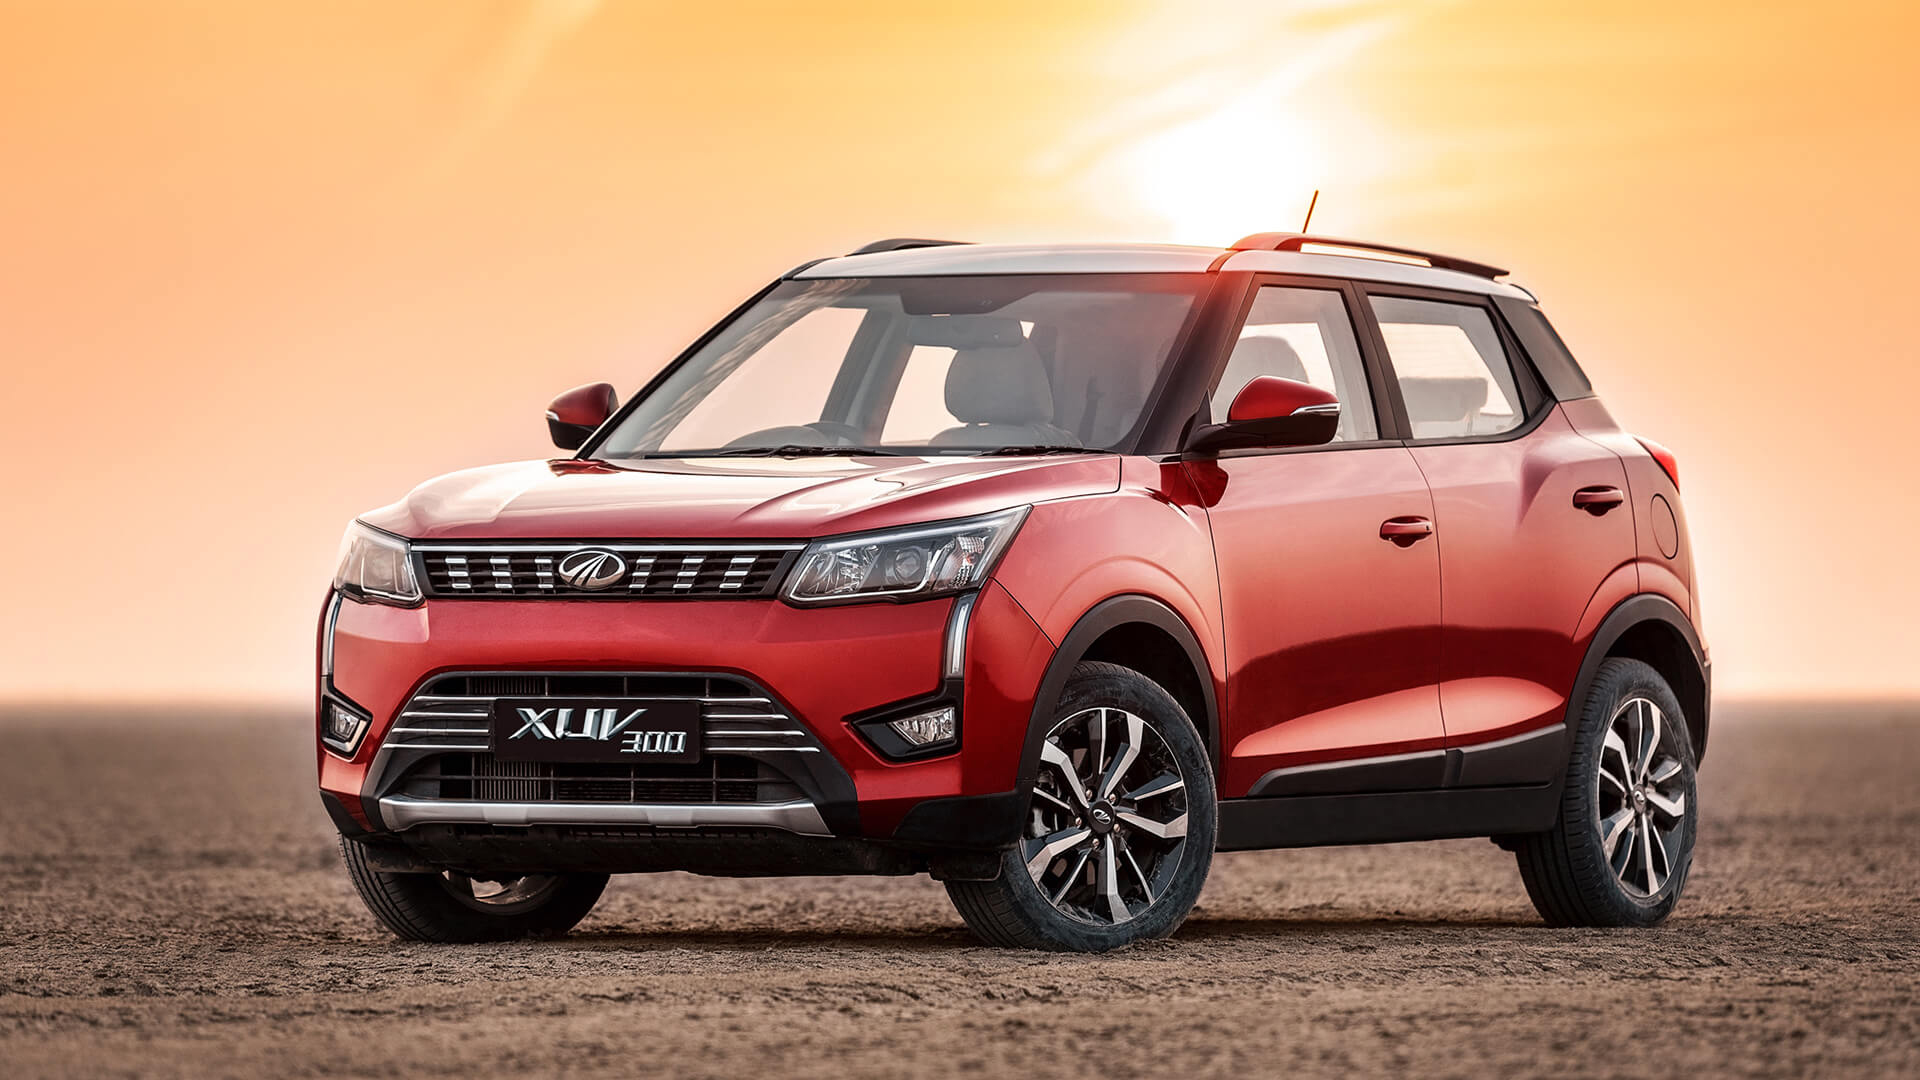 2019 Mahindra XUV300: First Test Drive Review of Petrol Variant